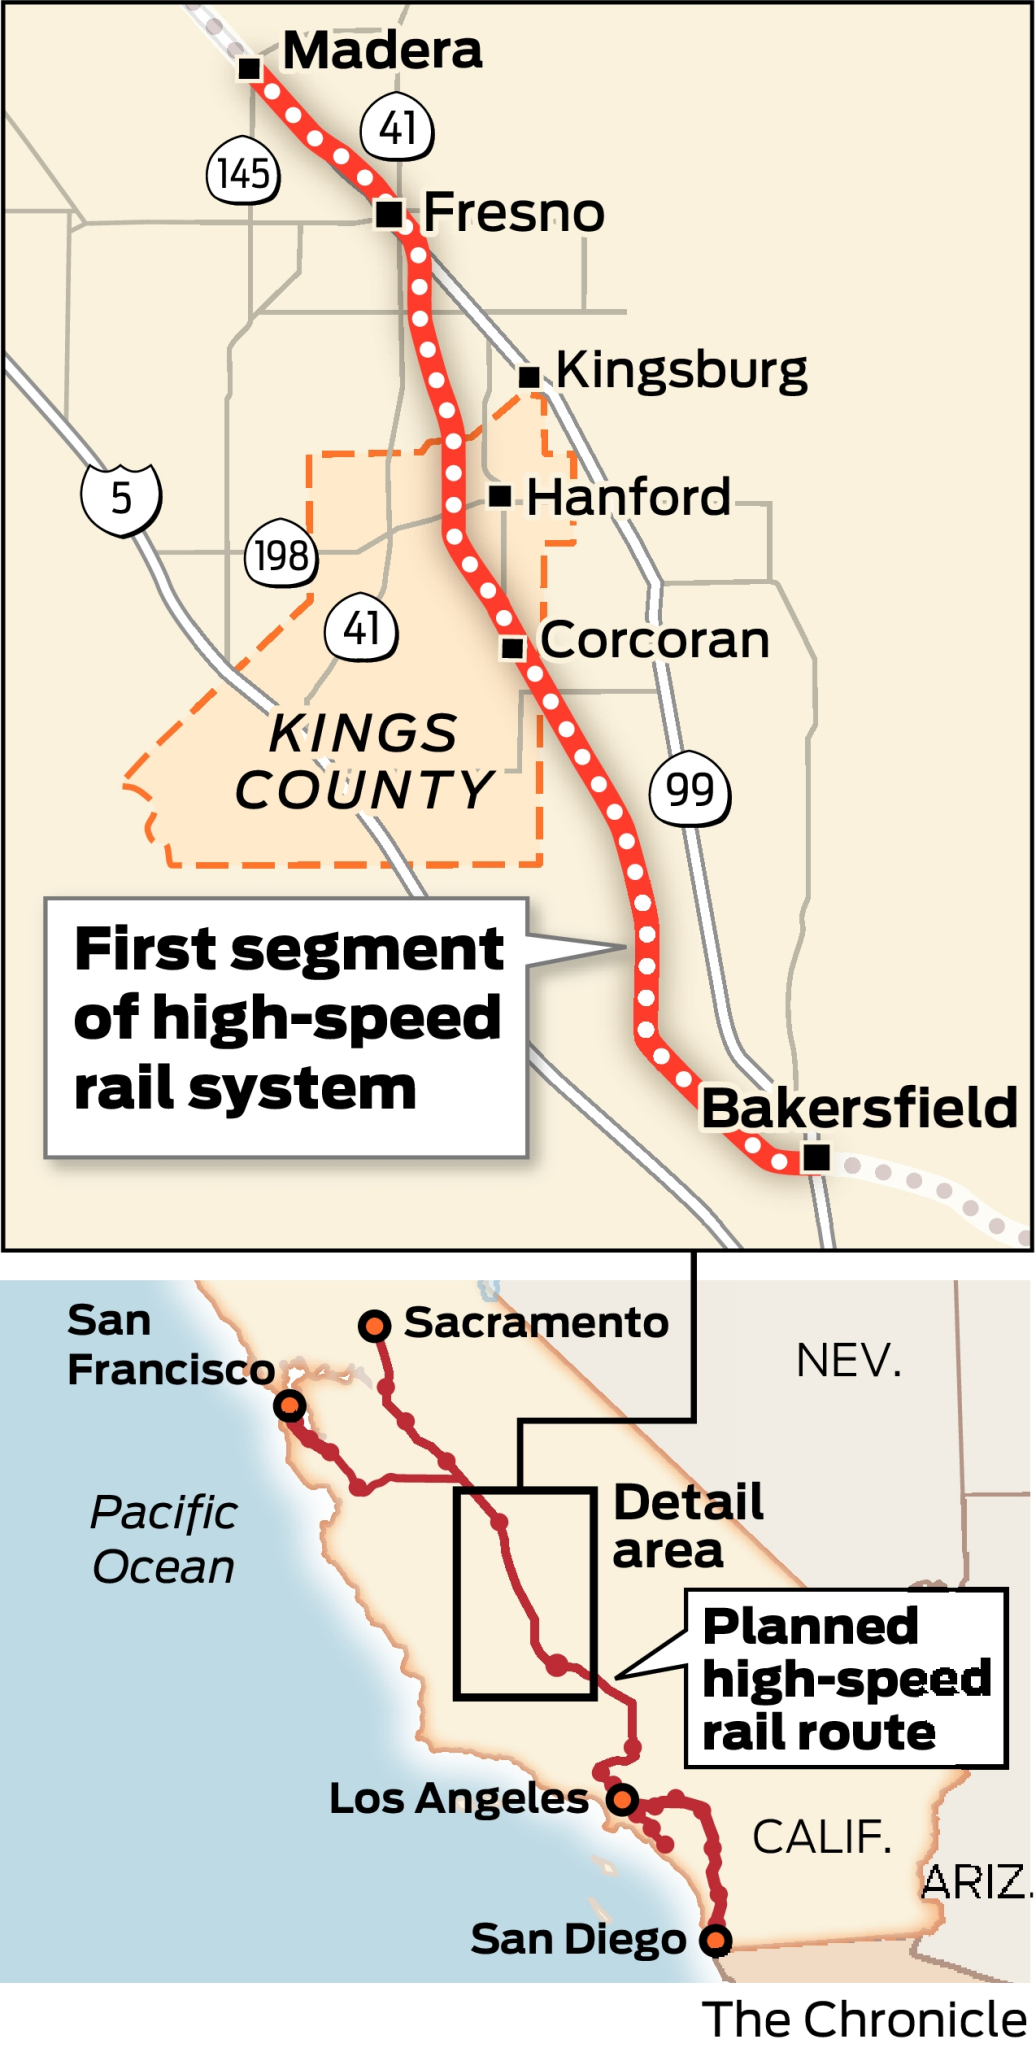 Cost of California's high-speed rail rises, but trains to SF, LA still in the works